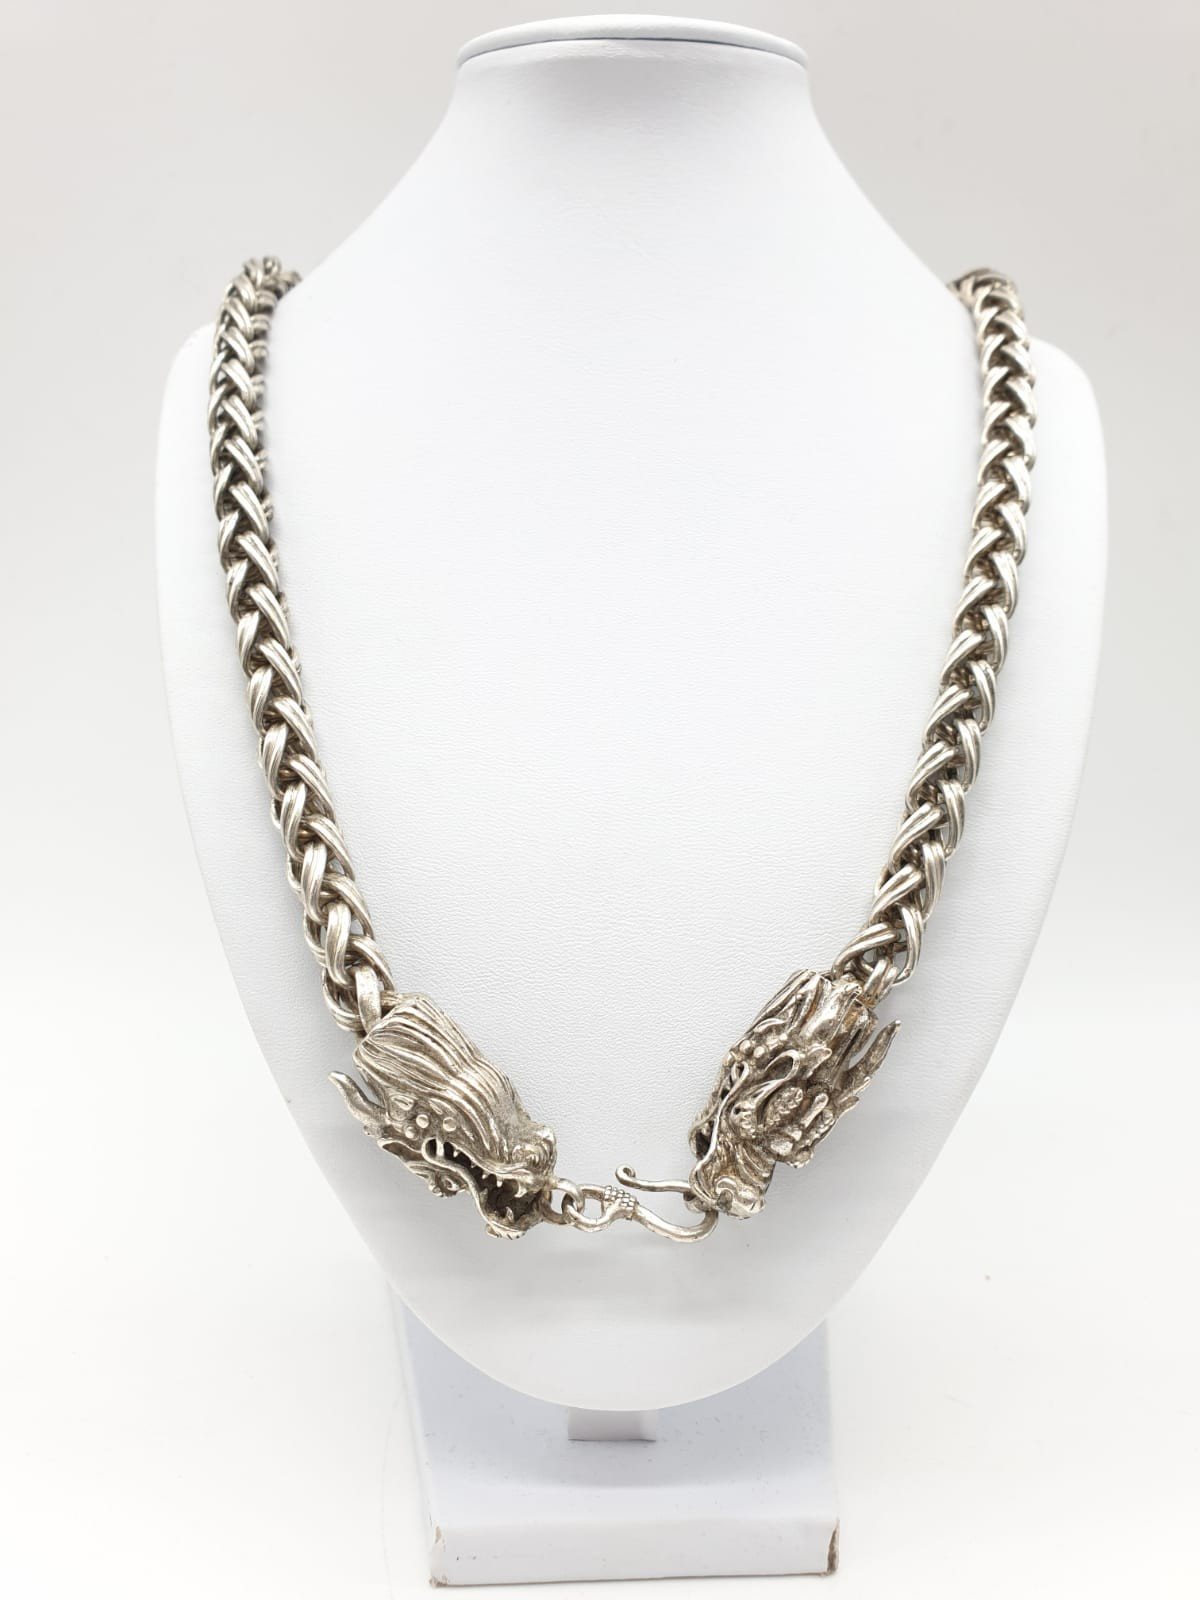 A Tibetan silver, braded chain, necklace with two Chinese dragon heads. Necklace length: 68cm,